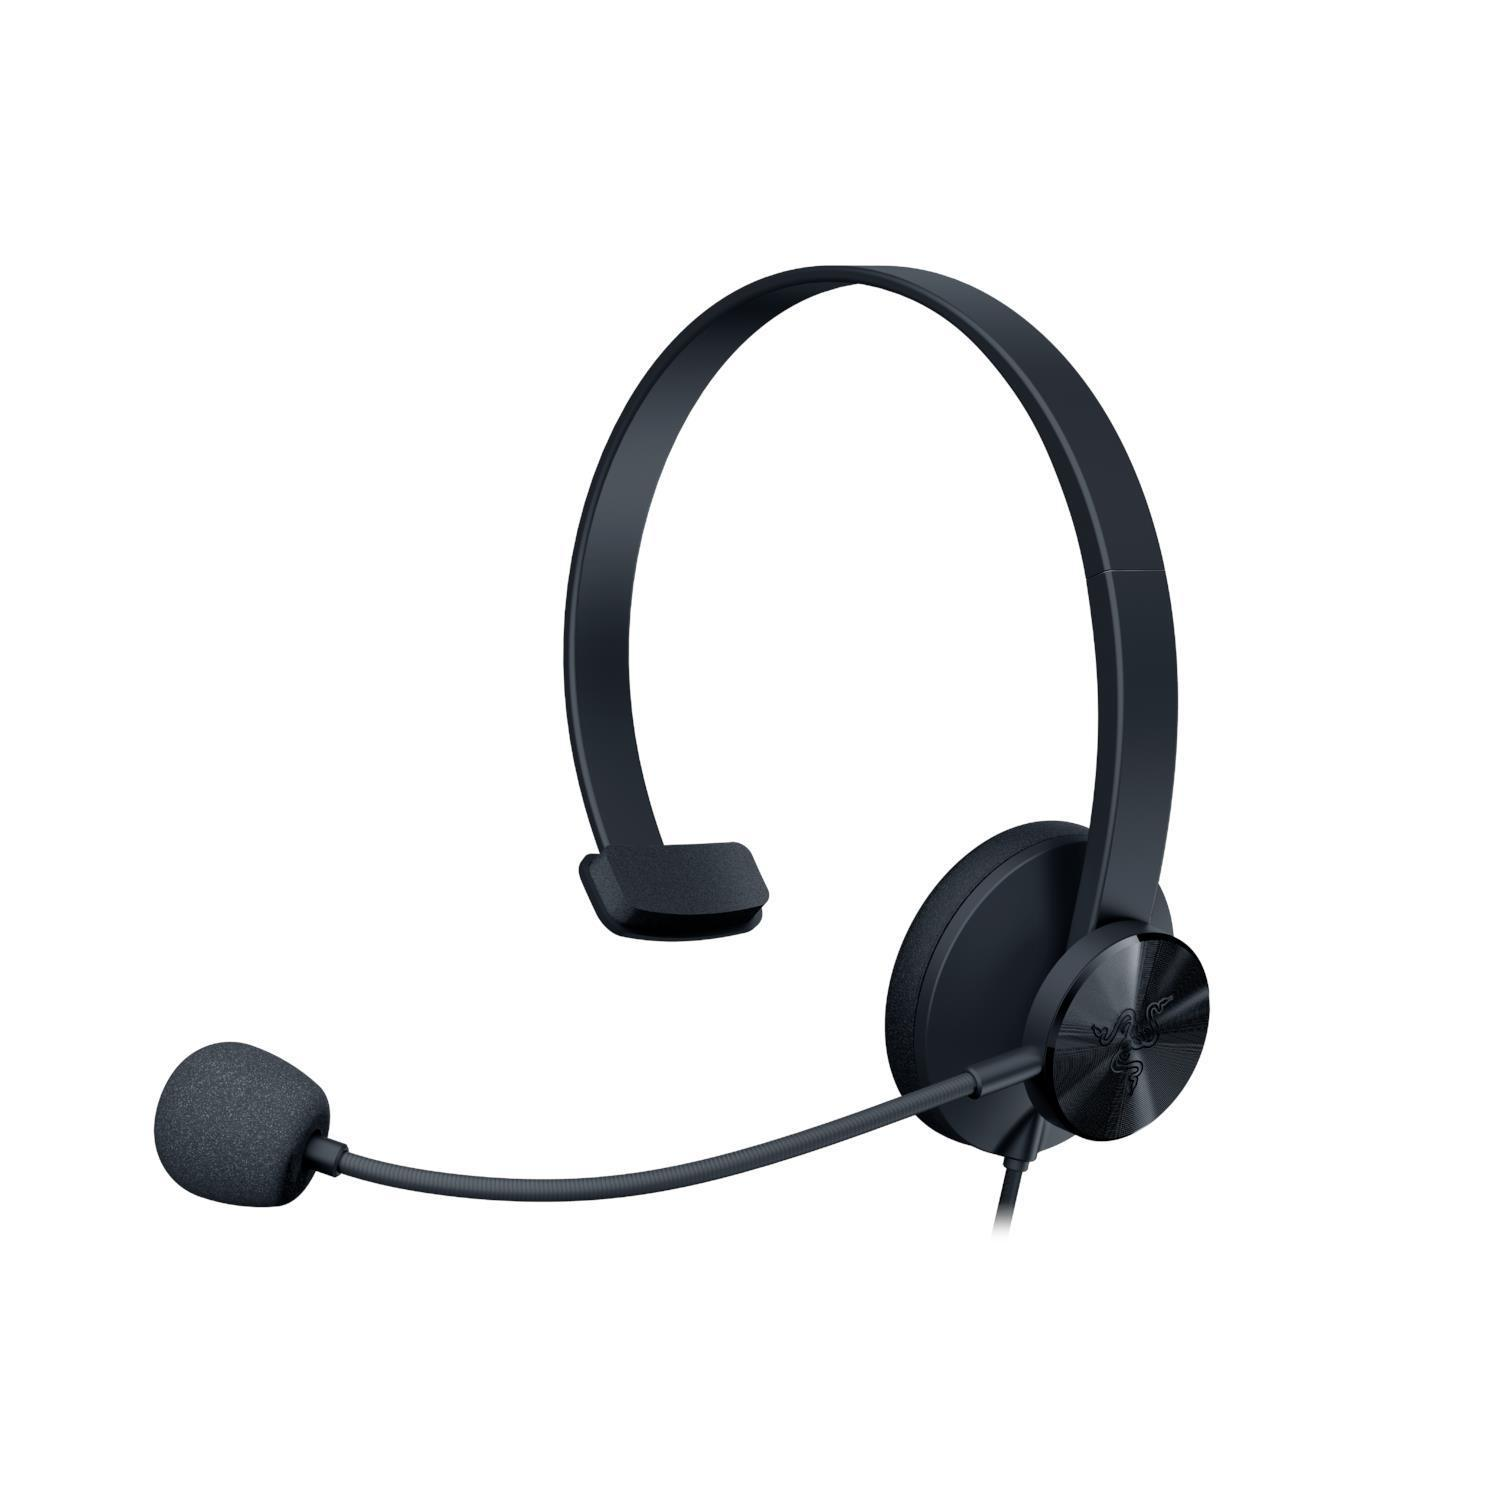 Razer Tetra Chat Headset